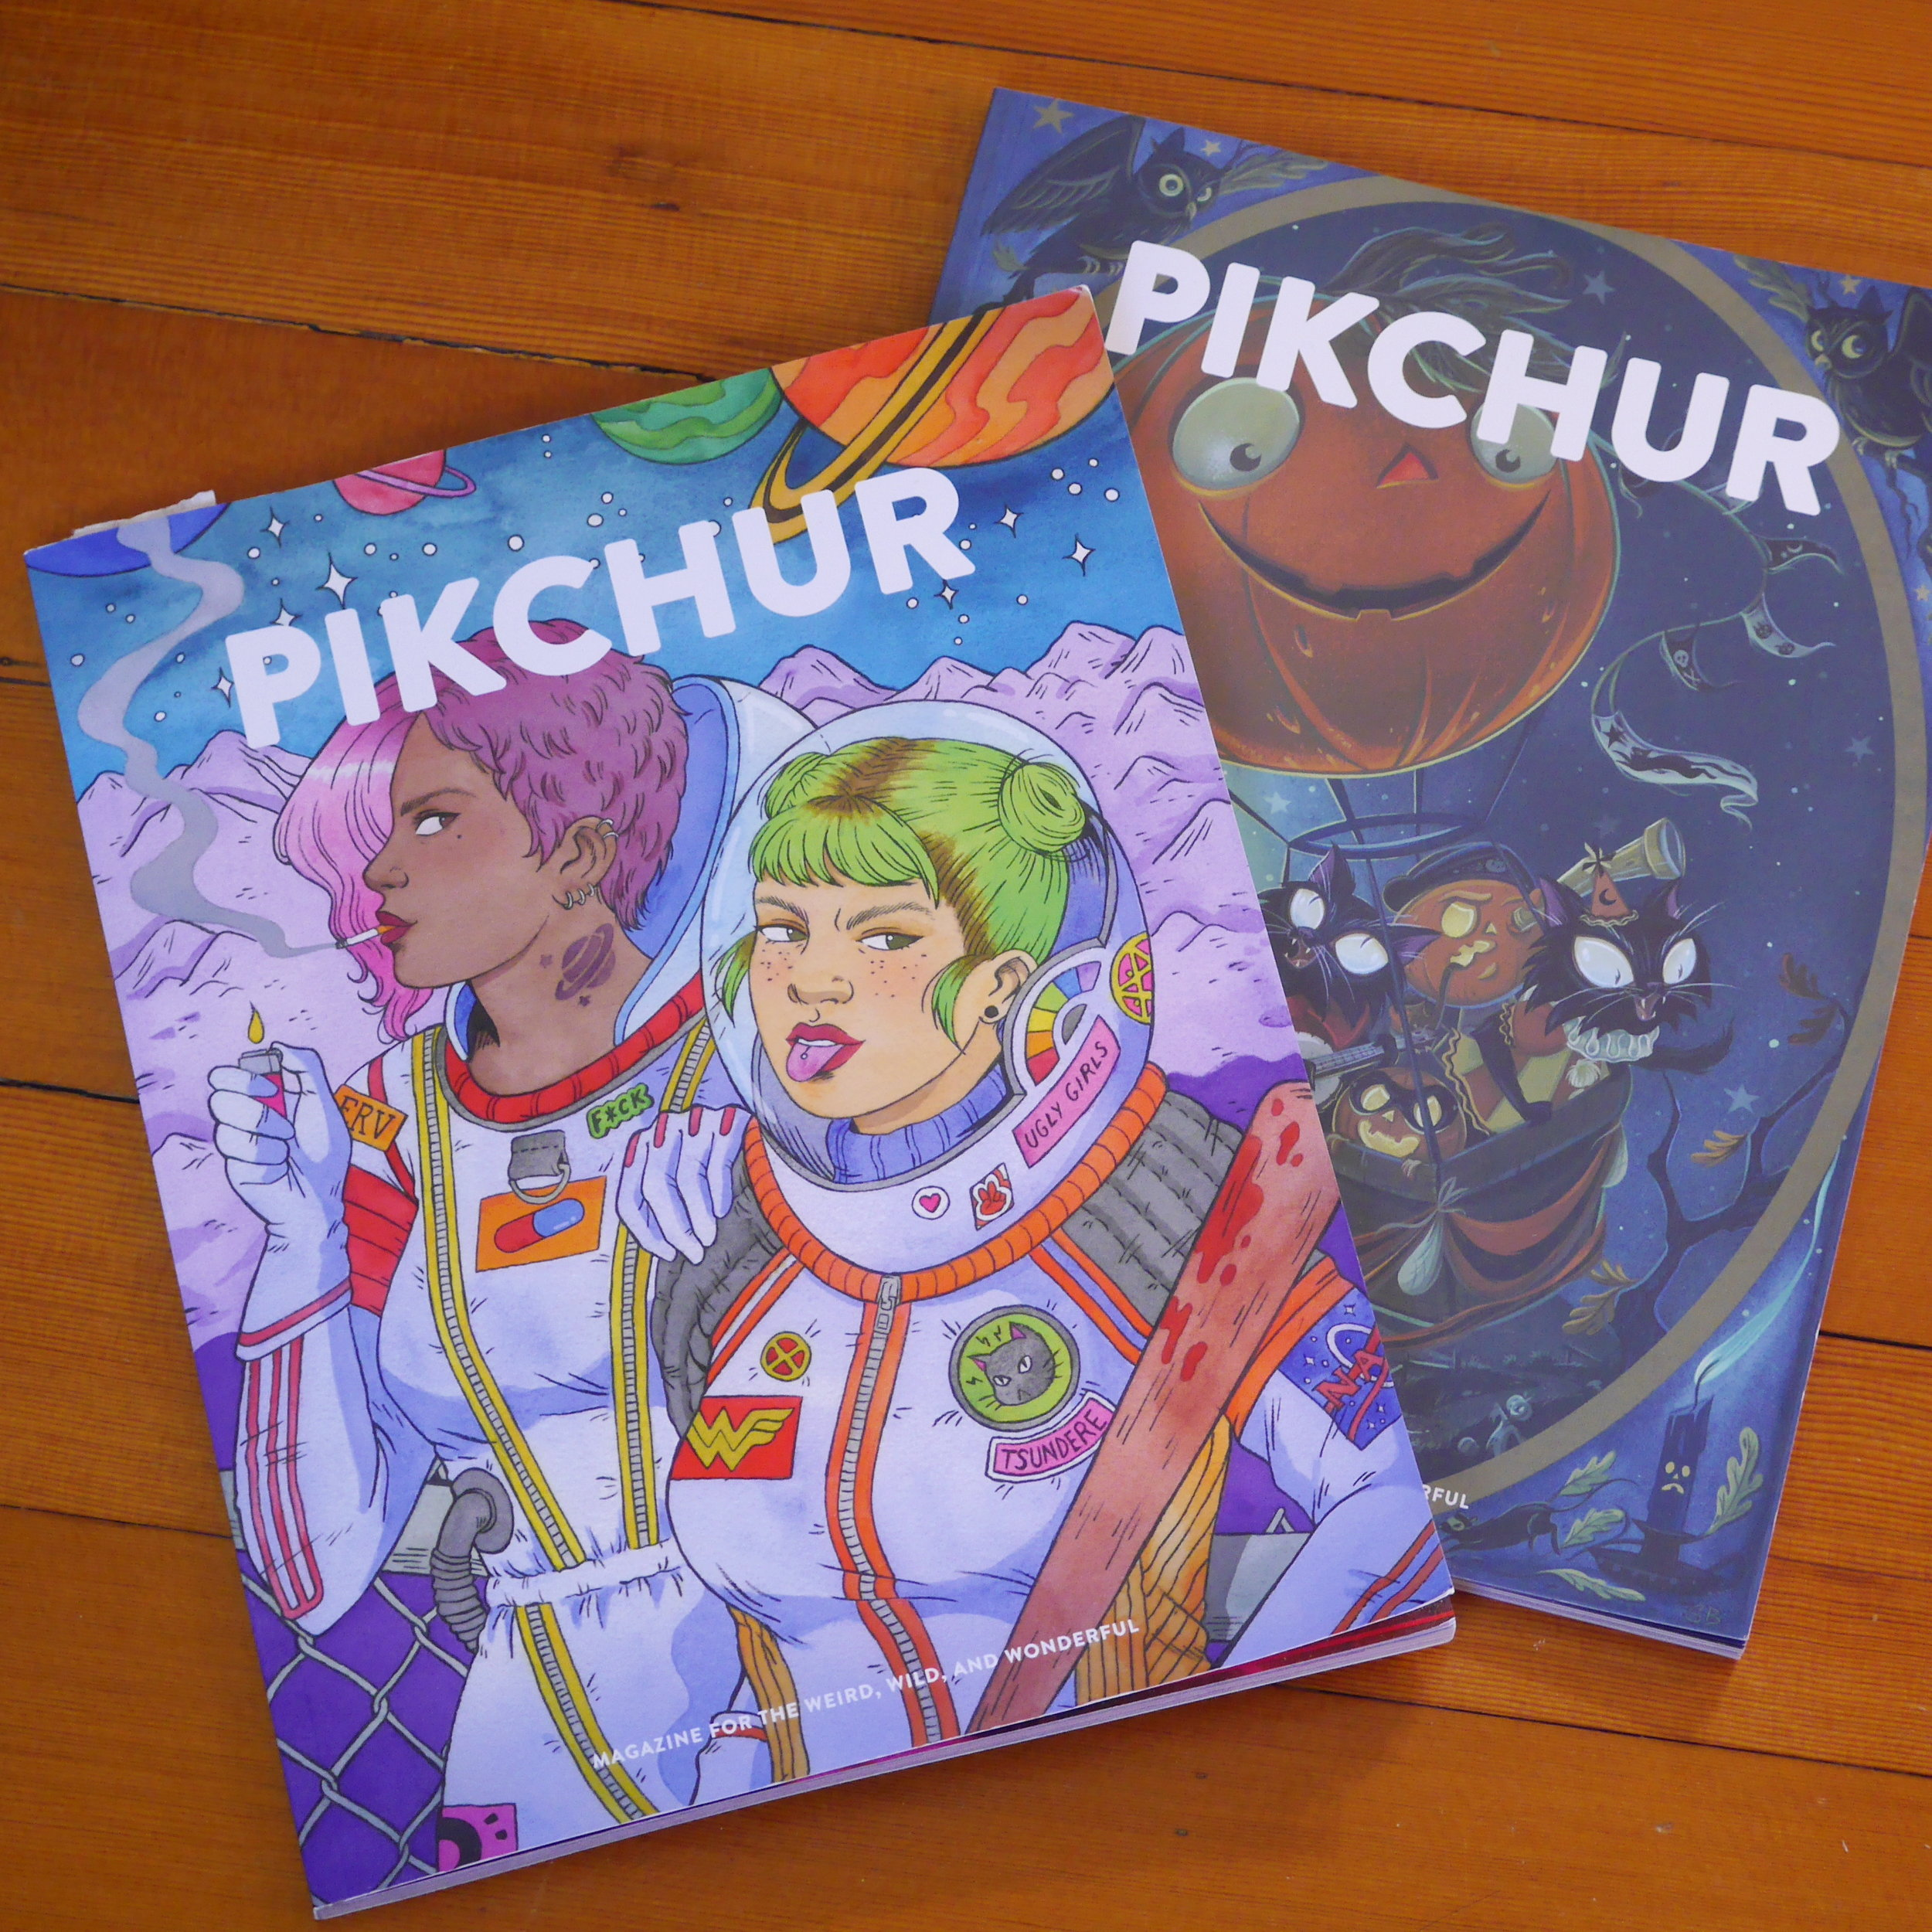 2. Pikchur magazine  - US based magazine  - 4 issues per year  - first published in 2018  - bizarre, strange, magical and weird art  - website: https://www.pikchurmag.com